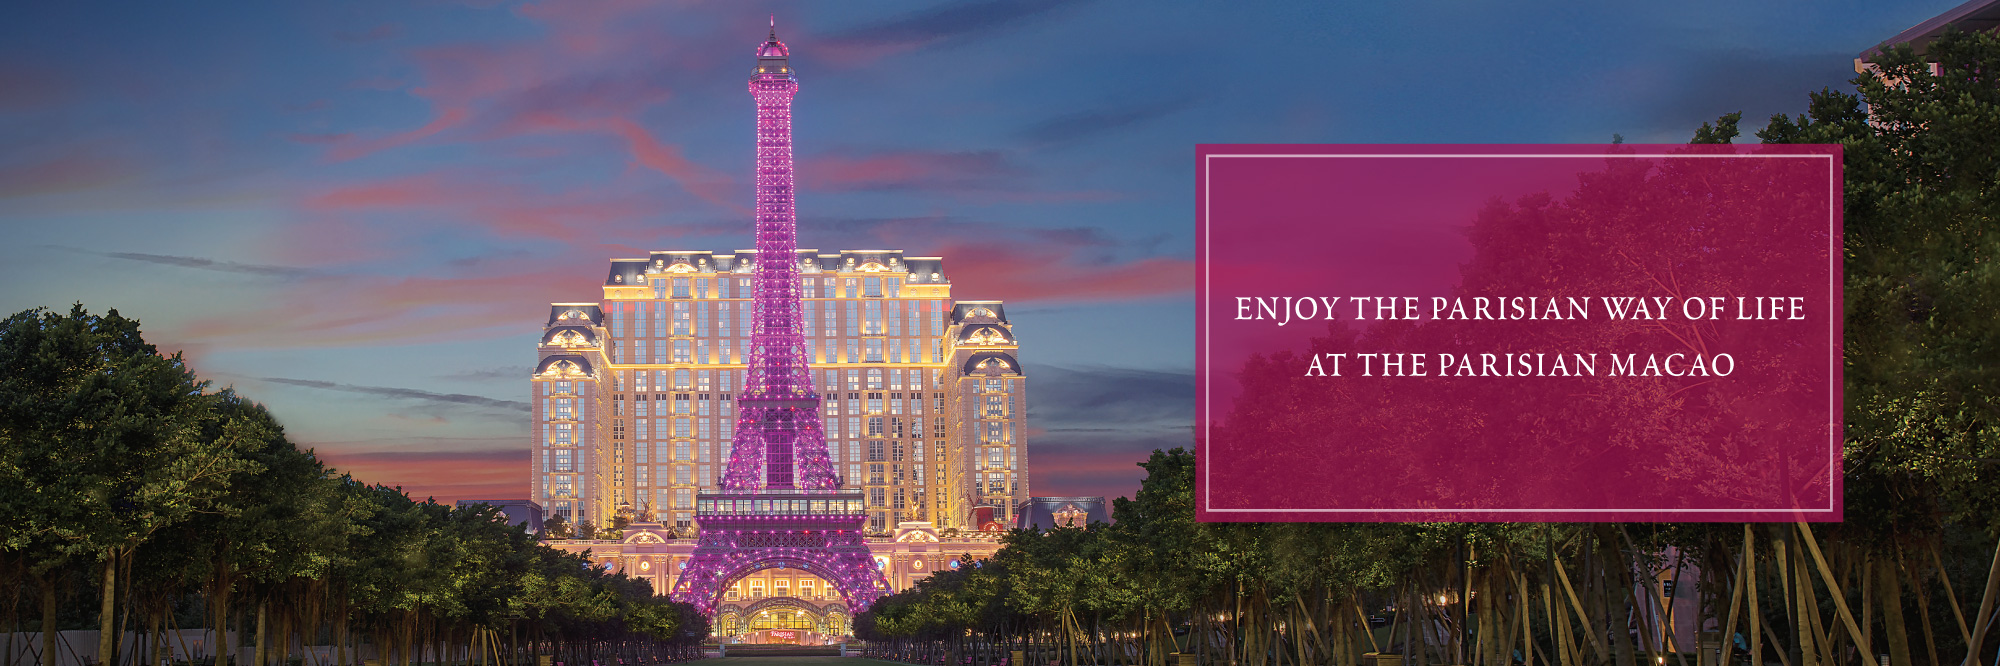 10 Hot Spots You Must Visit At The Parisian Macao | The